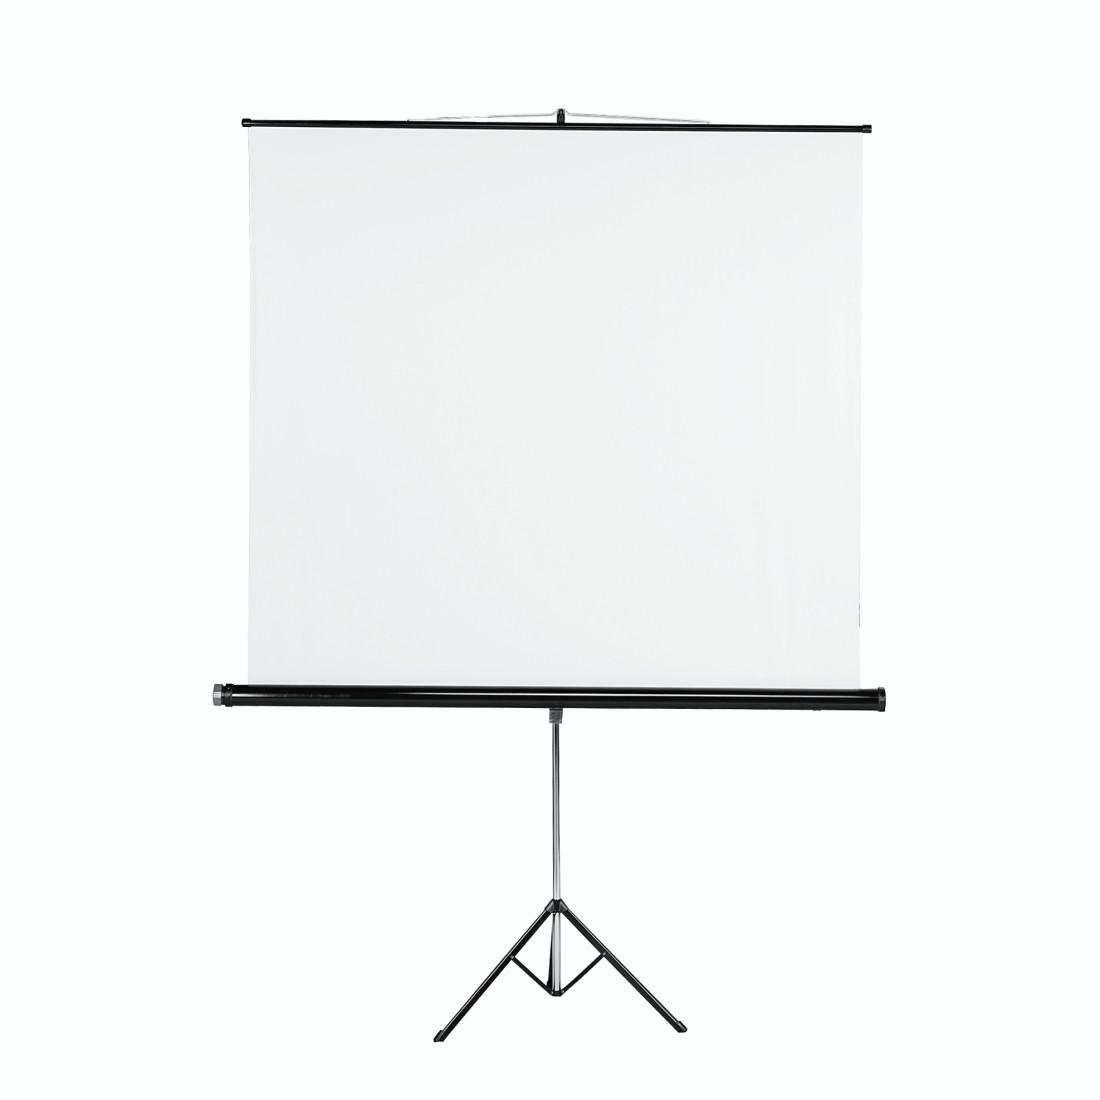 abx High-Res Image - Hama, Ecran de projection sur pied 125 x 125 cm, blanc